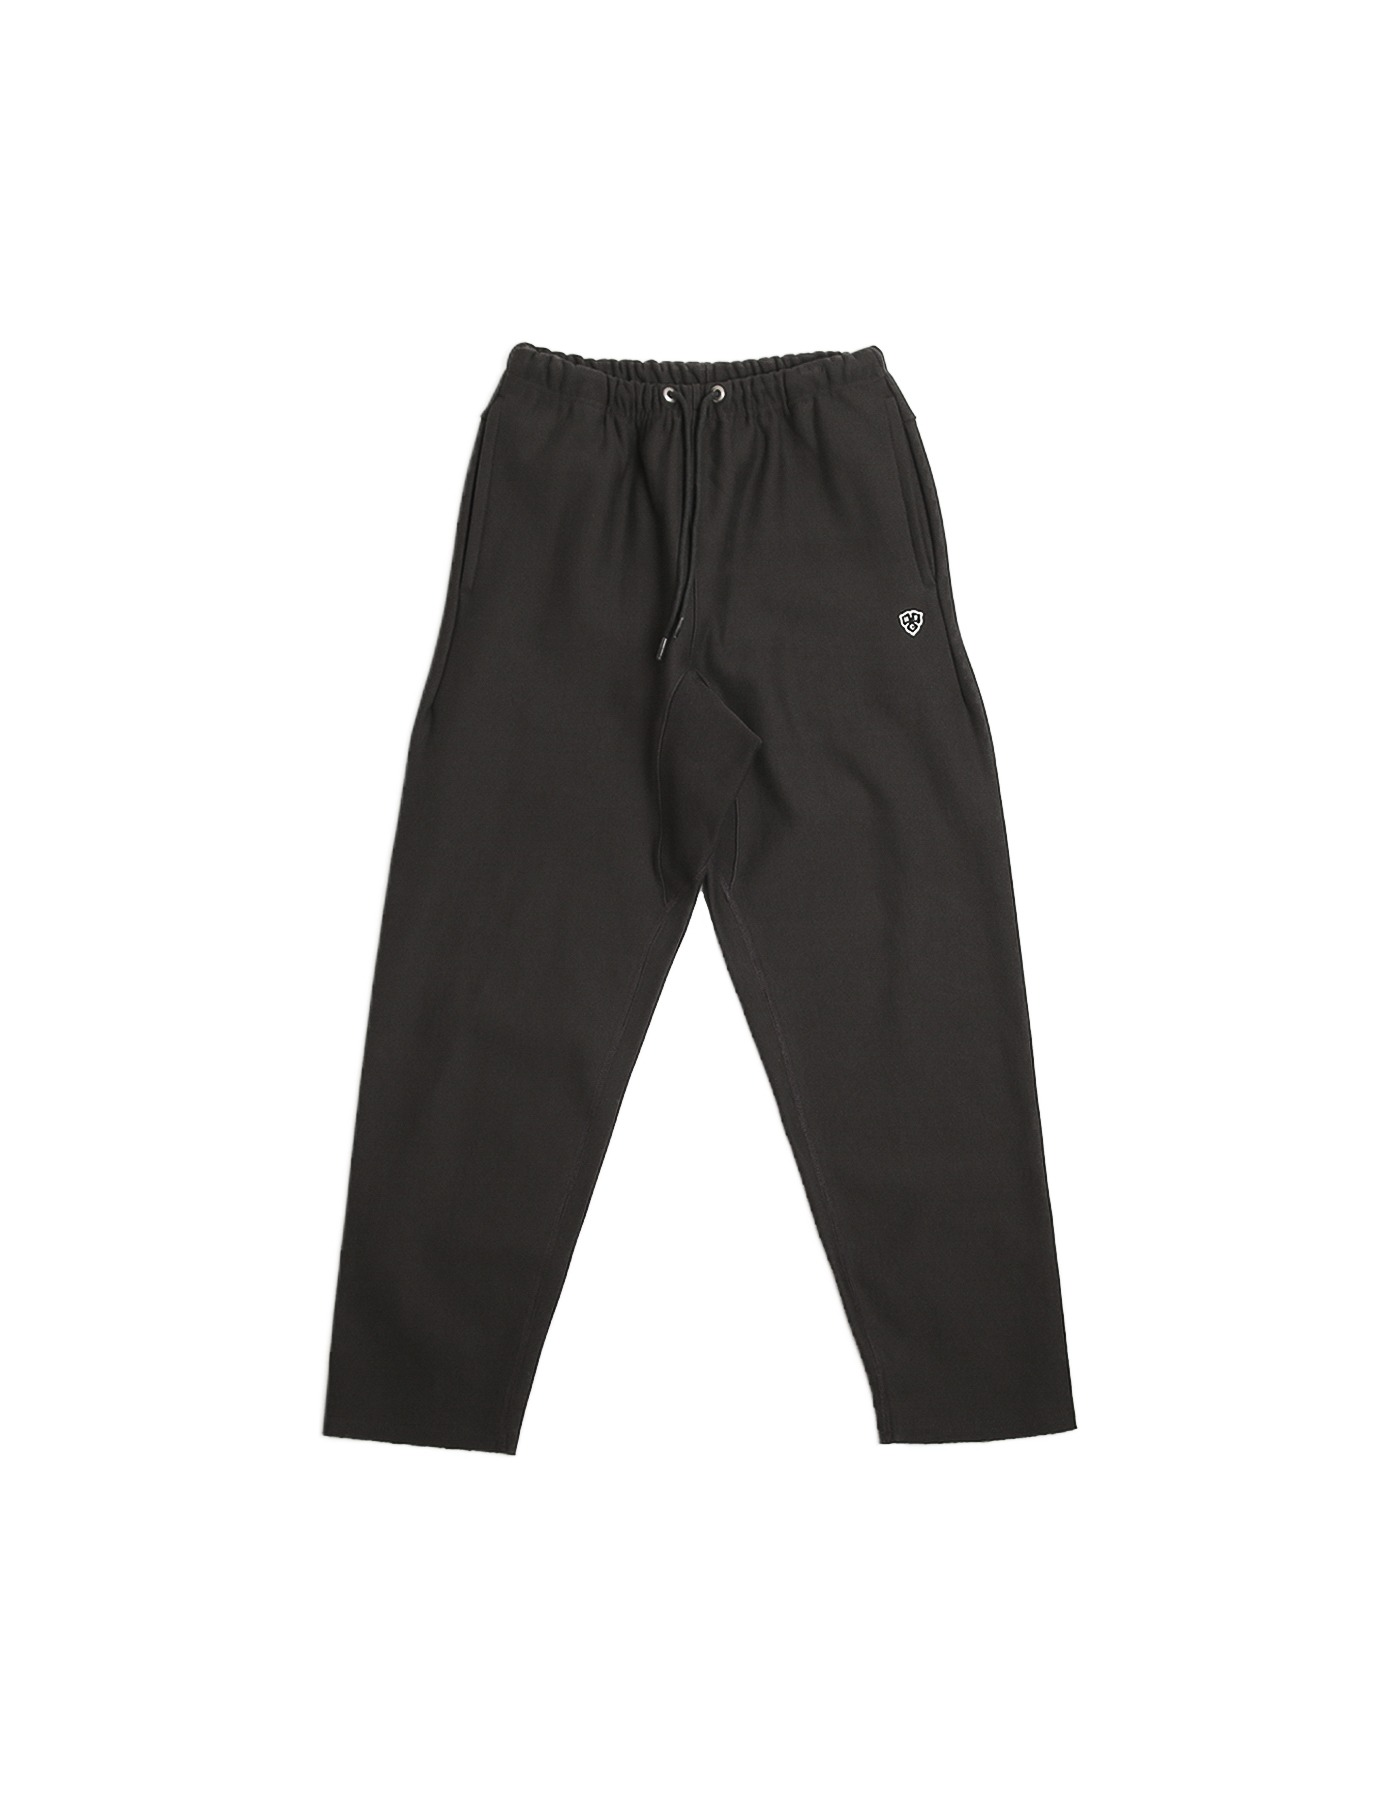 221 REVERSE RAW-CUT PANTS / CHARCOAL